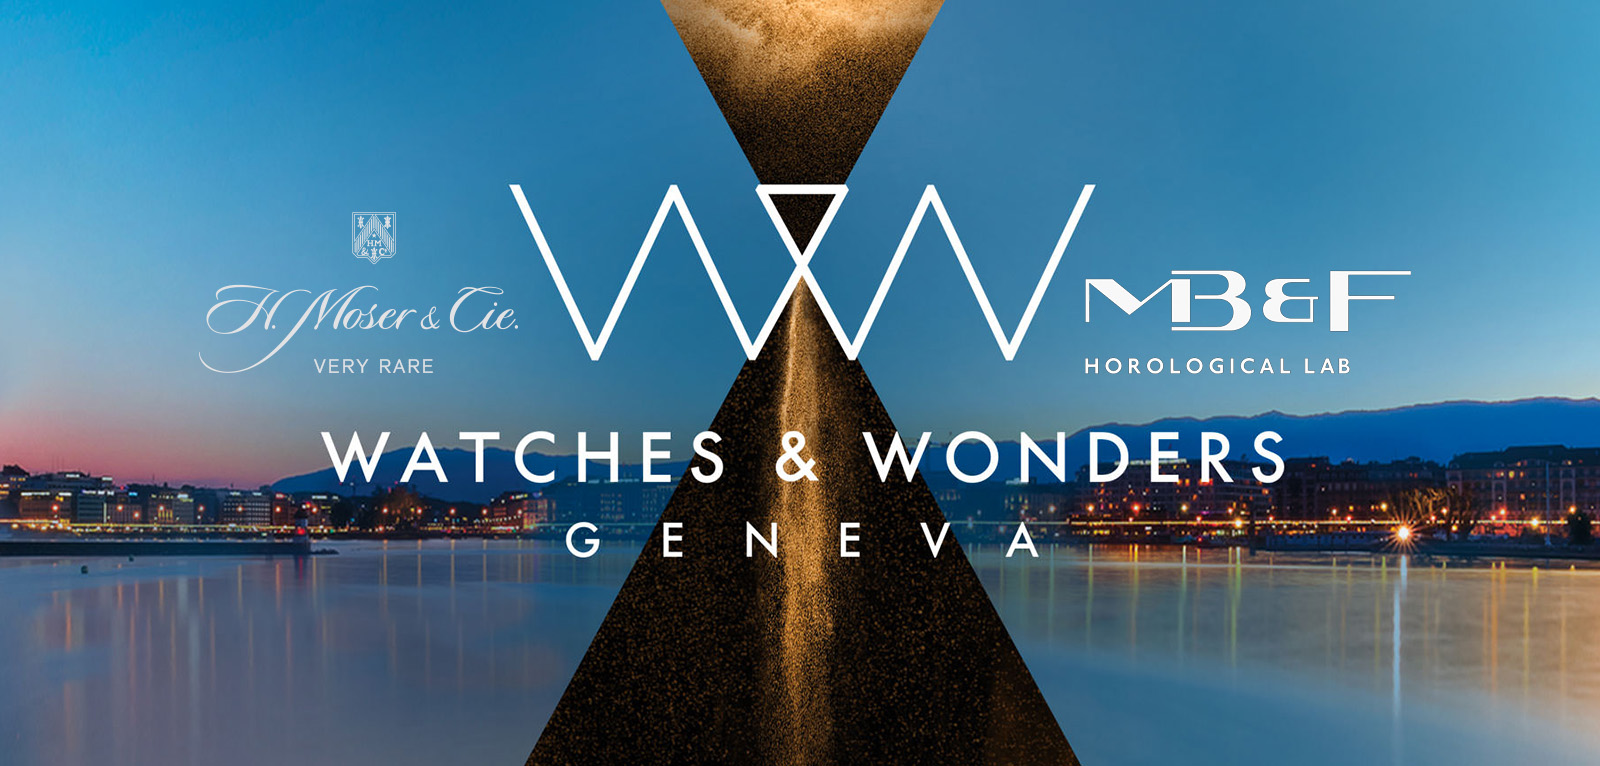 Watches & Wonders Geneva 2020